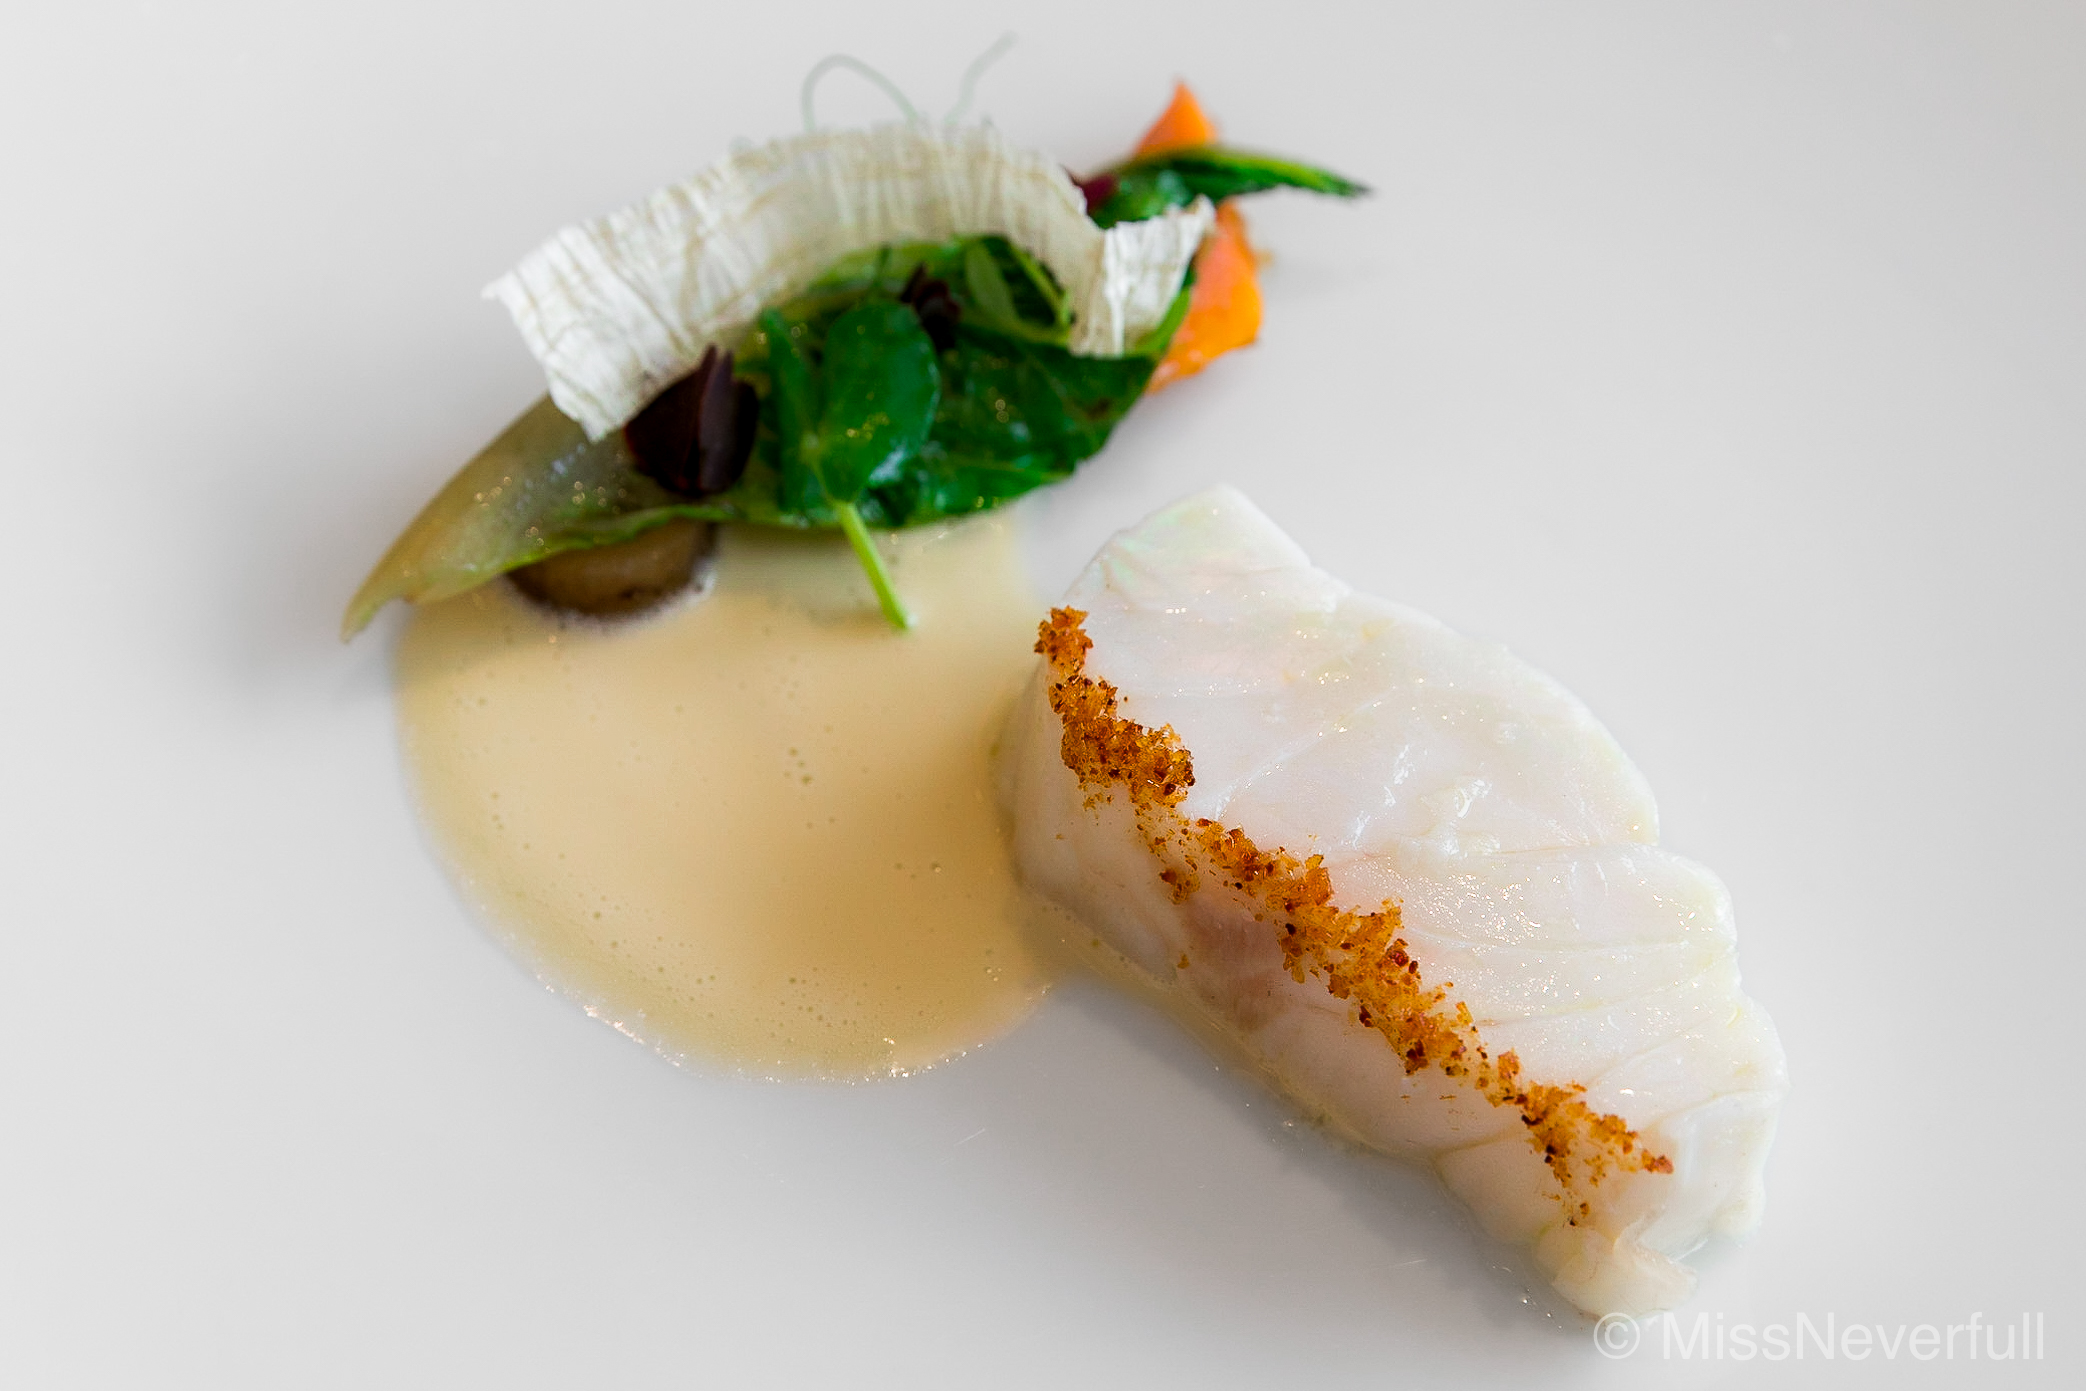 5. Kue (grouper), Sauce of white wine, crab consomme and wasabi